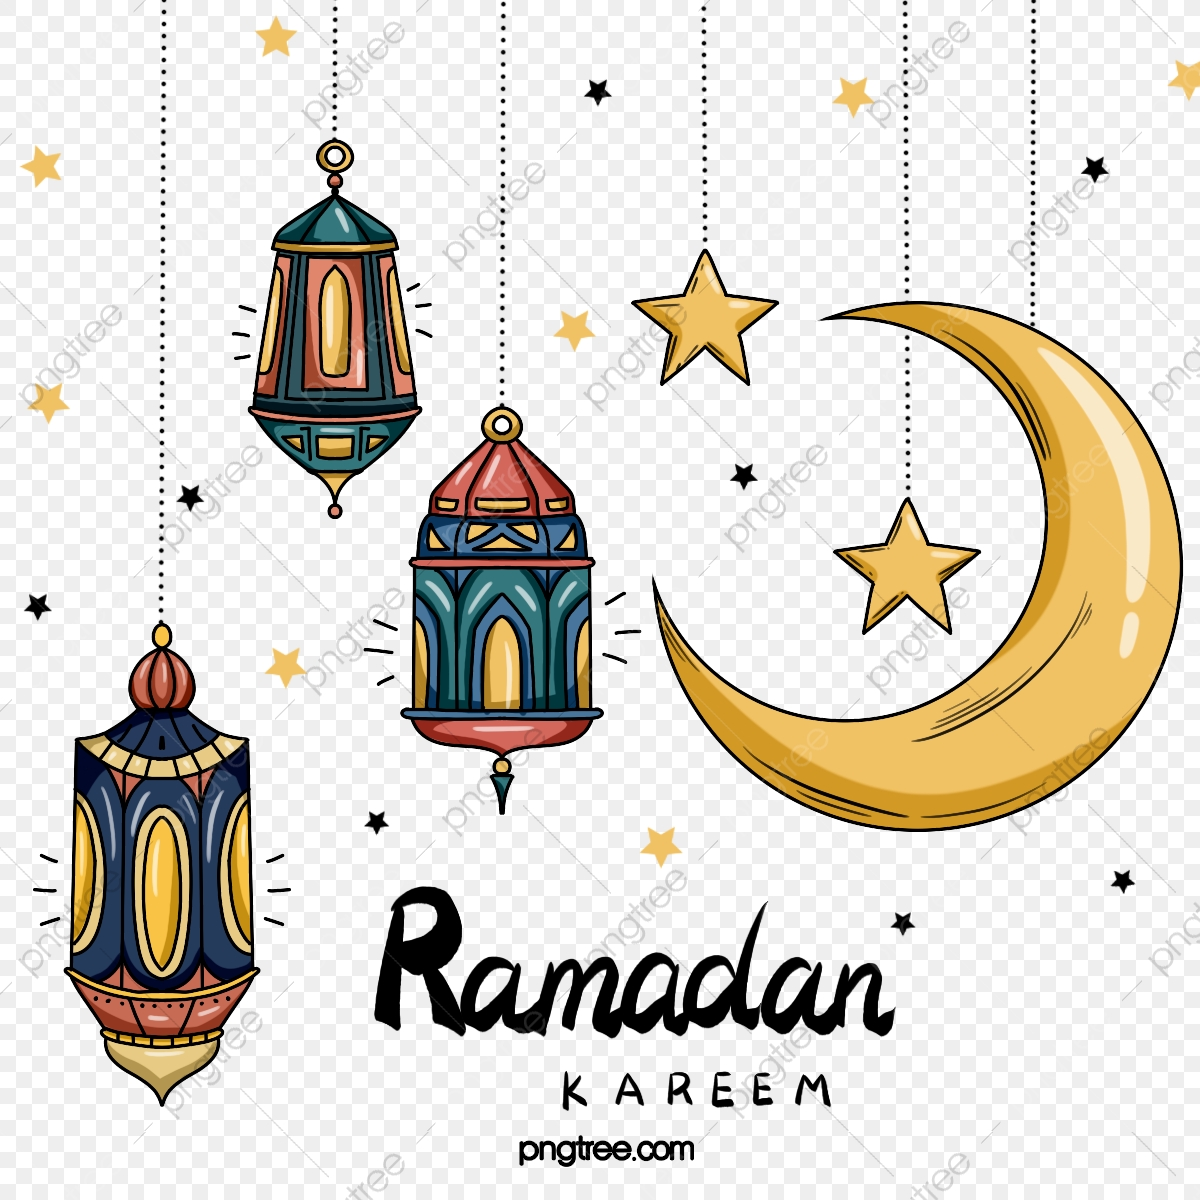 ramadan png images vector and psd files free download on pngtree https pngtree com freepng ramadan festival cartoon lantern element 5338303 html